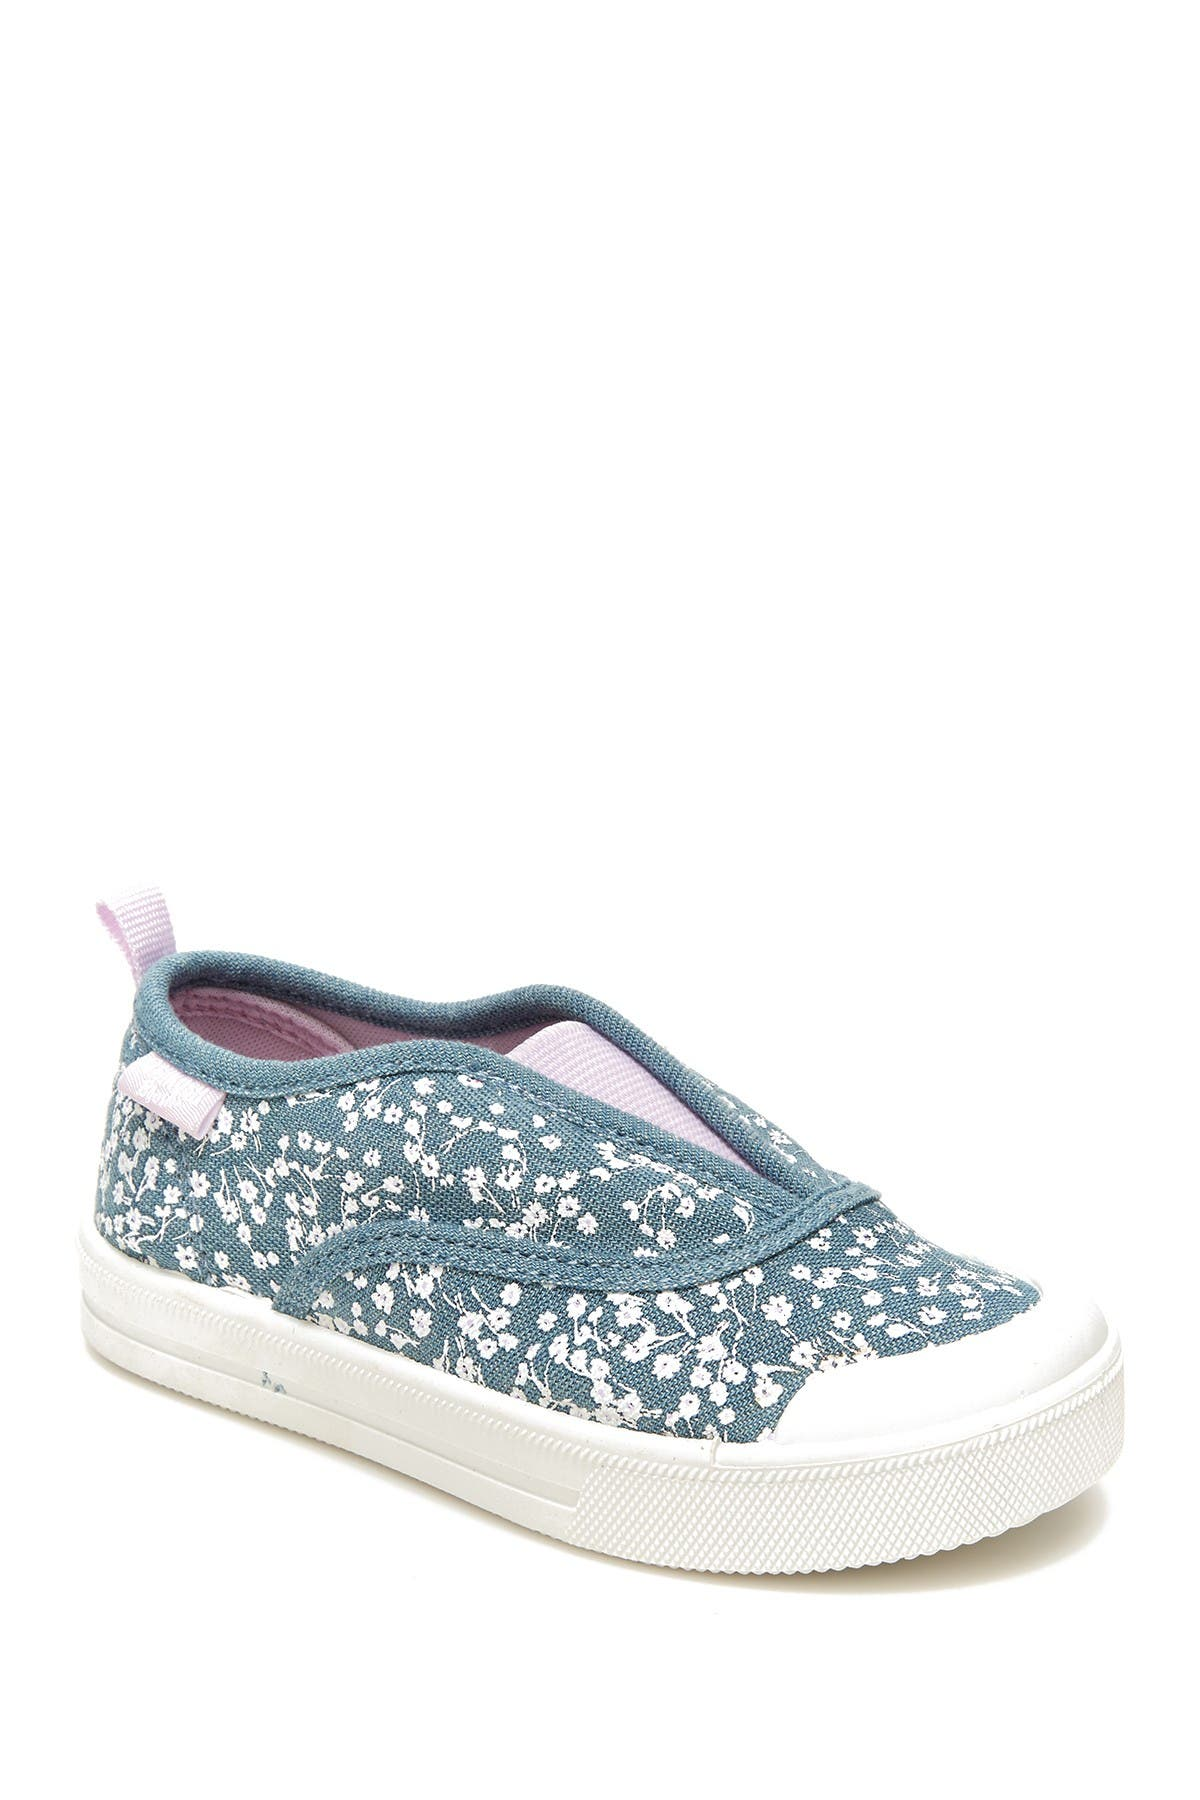 Image of OshKosh Lita Floral Print Slip-On Sneaker